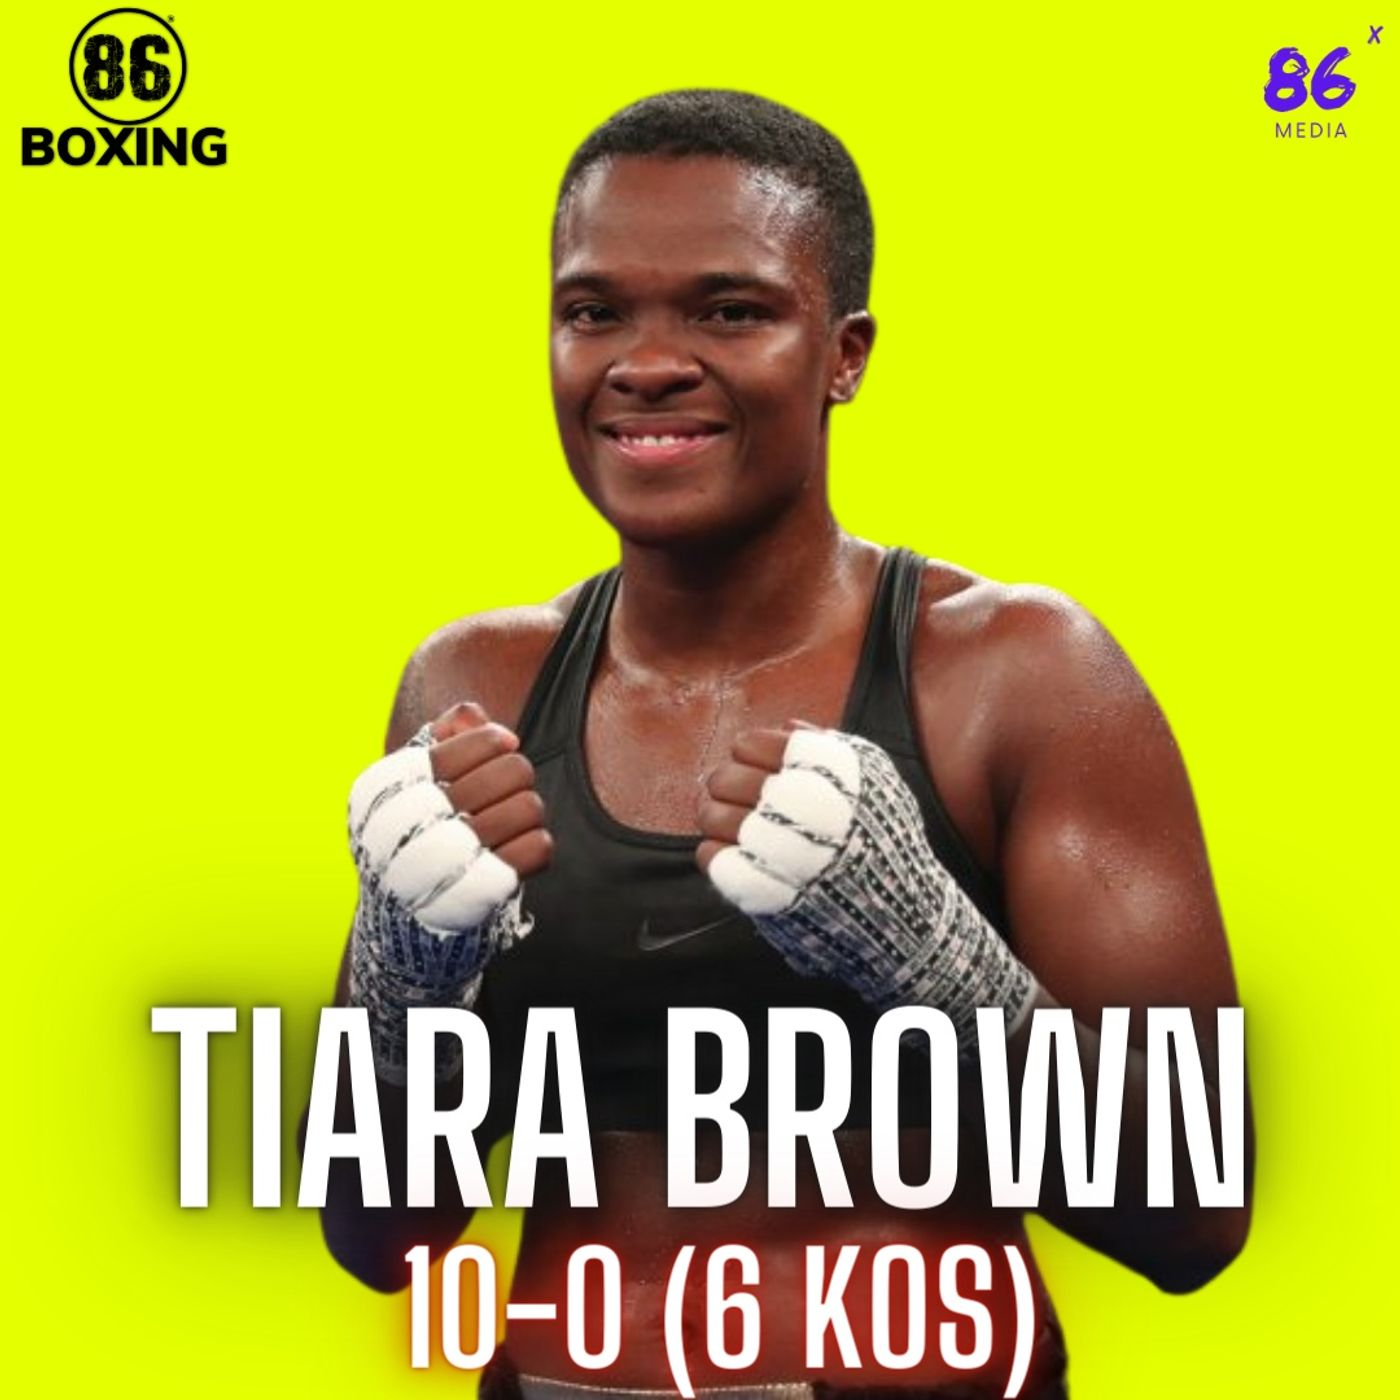 86Boxing E28: Tiara Brown - Exclusive Interview on Boxing, Life, Spirit, DC, Florida, & Community #86boxing